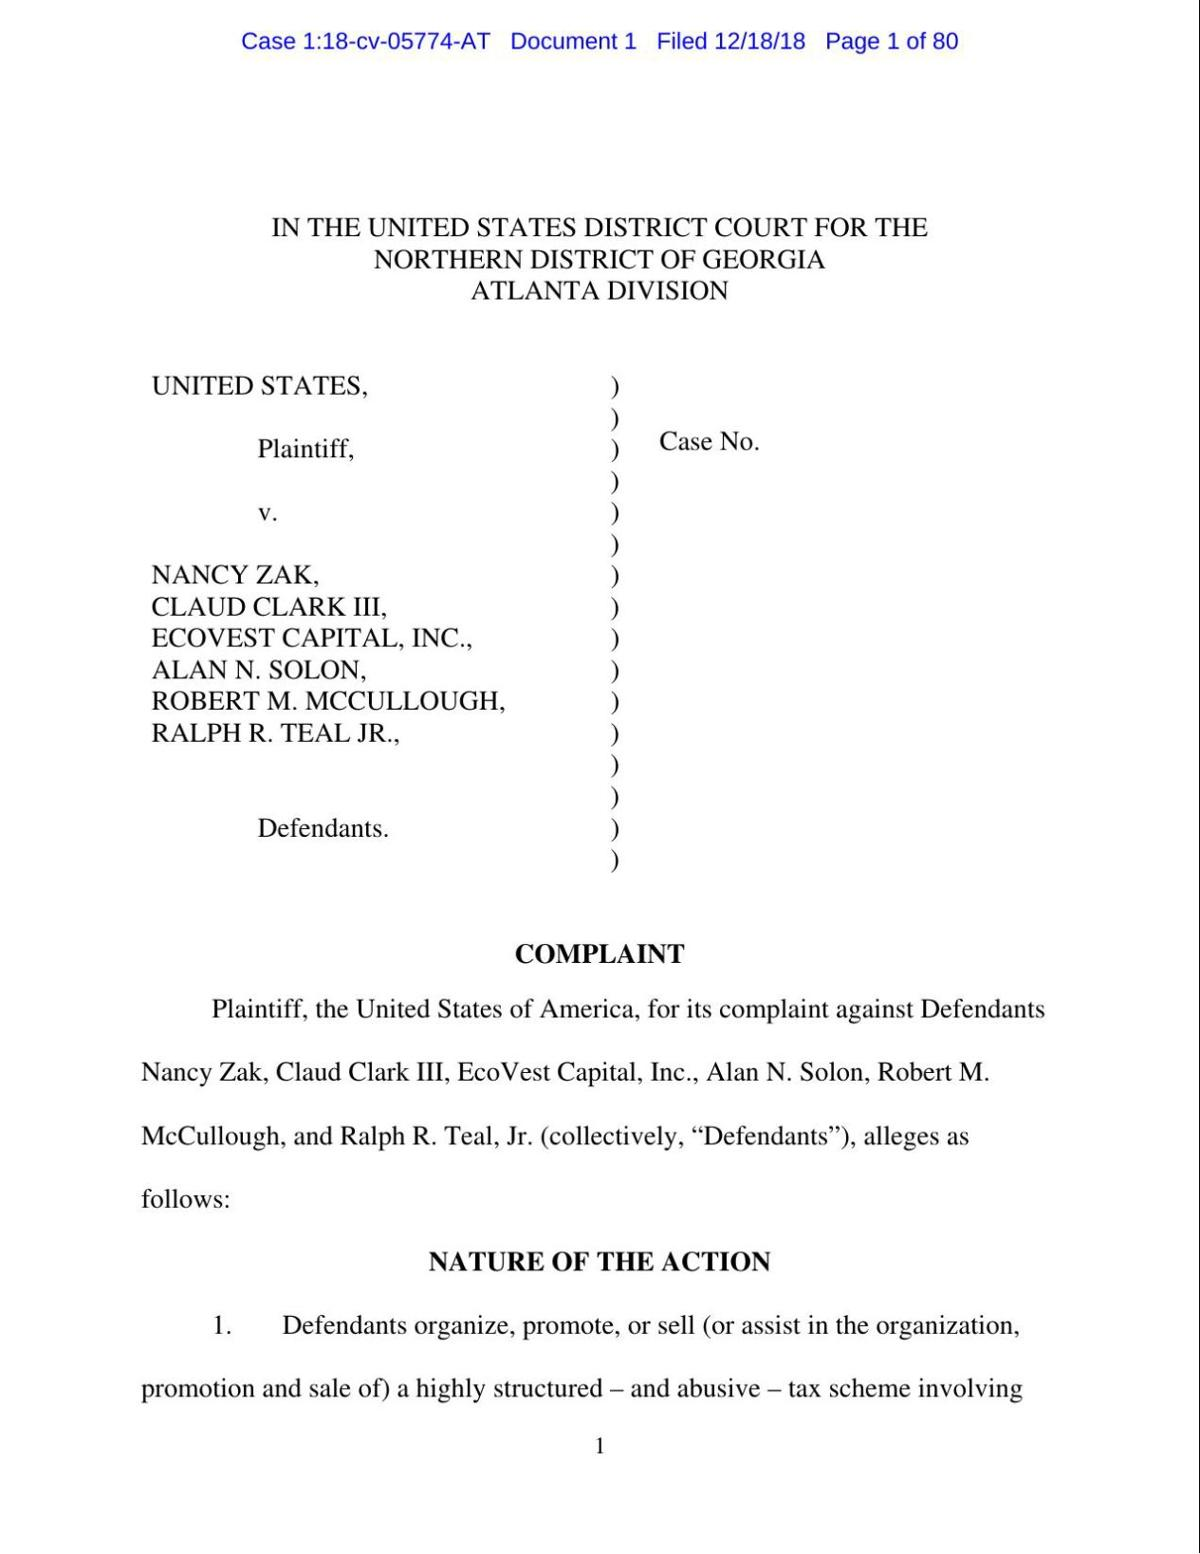 DOJ Complaint against EcoVest (PDF)